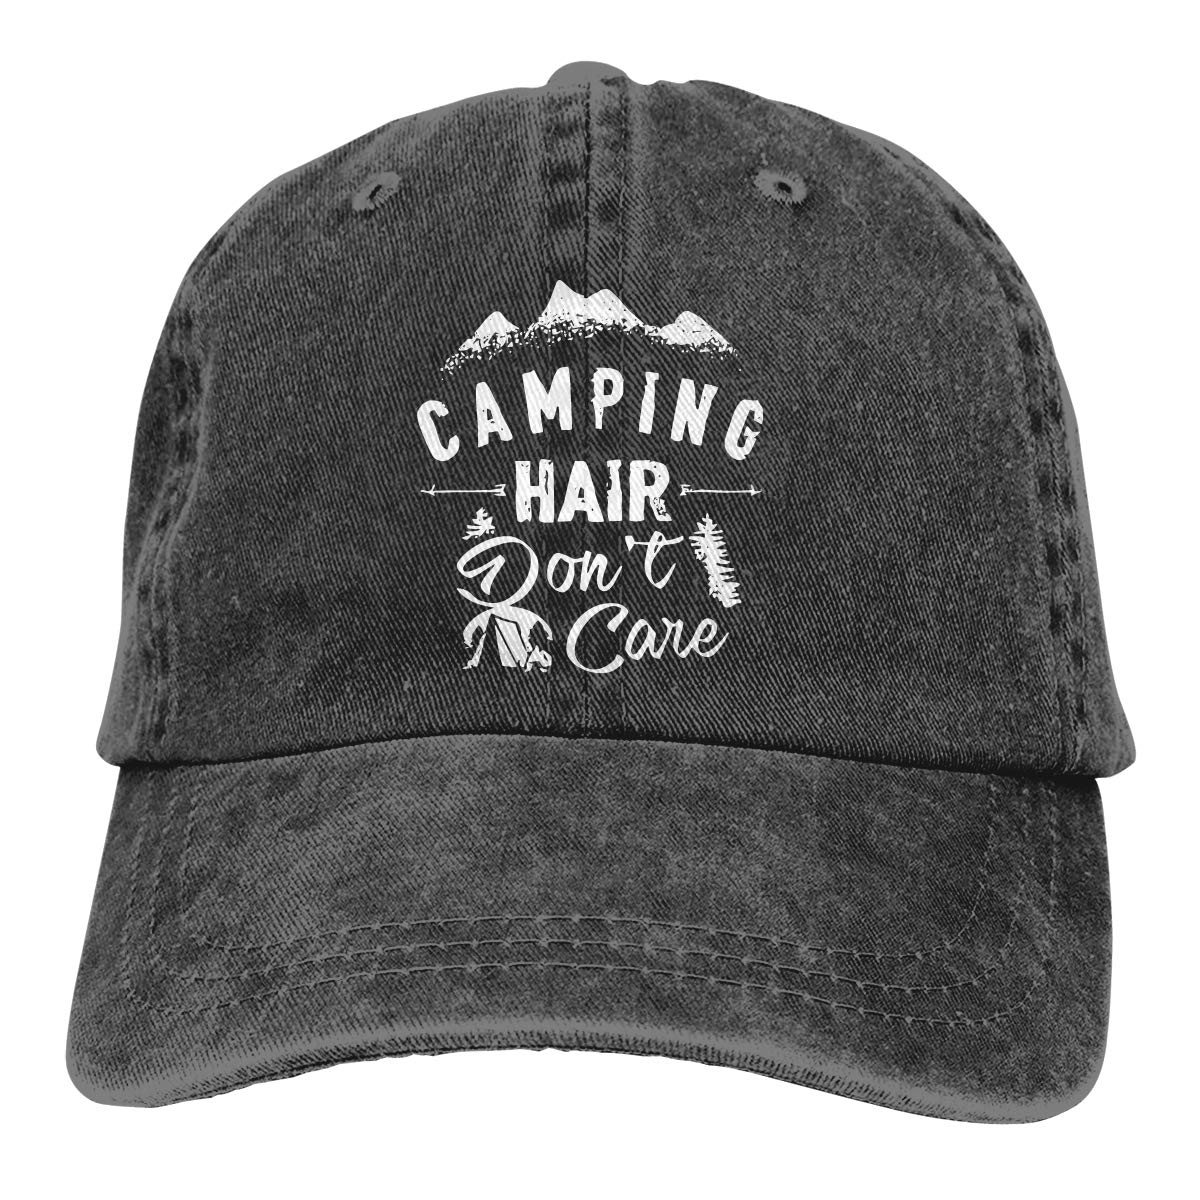 MANMESH HATT Camping Hair Don't Care Unisex Adult Adjustable Trucker Dad Hats